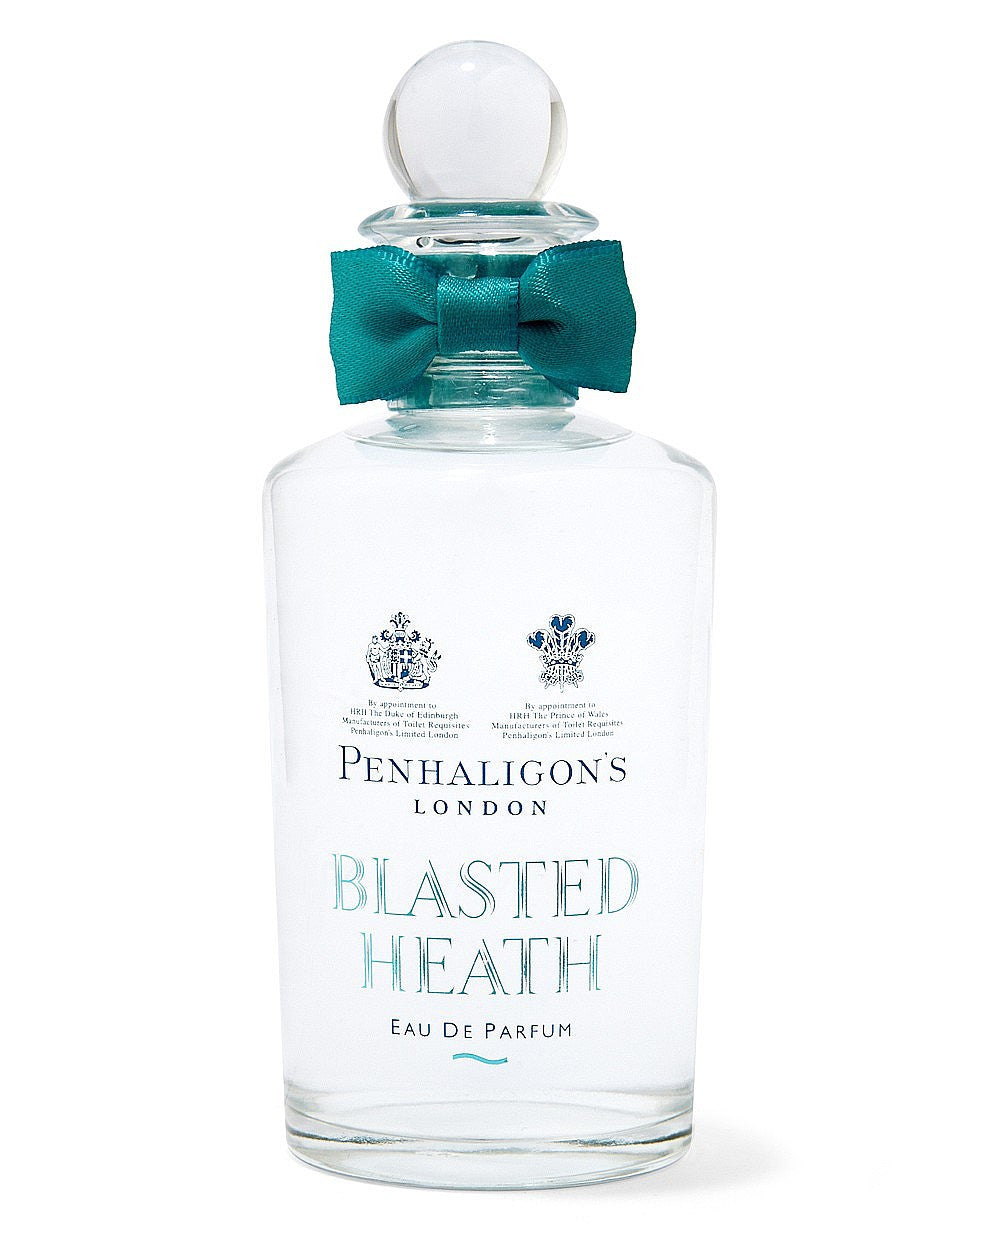 Penhaligon's – Blasted Heath Eau de Parfum